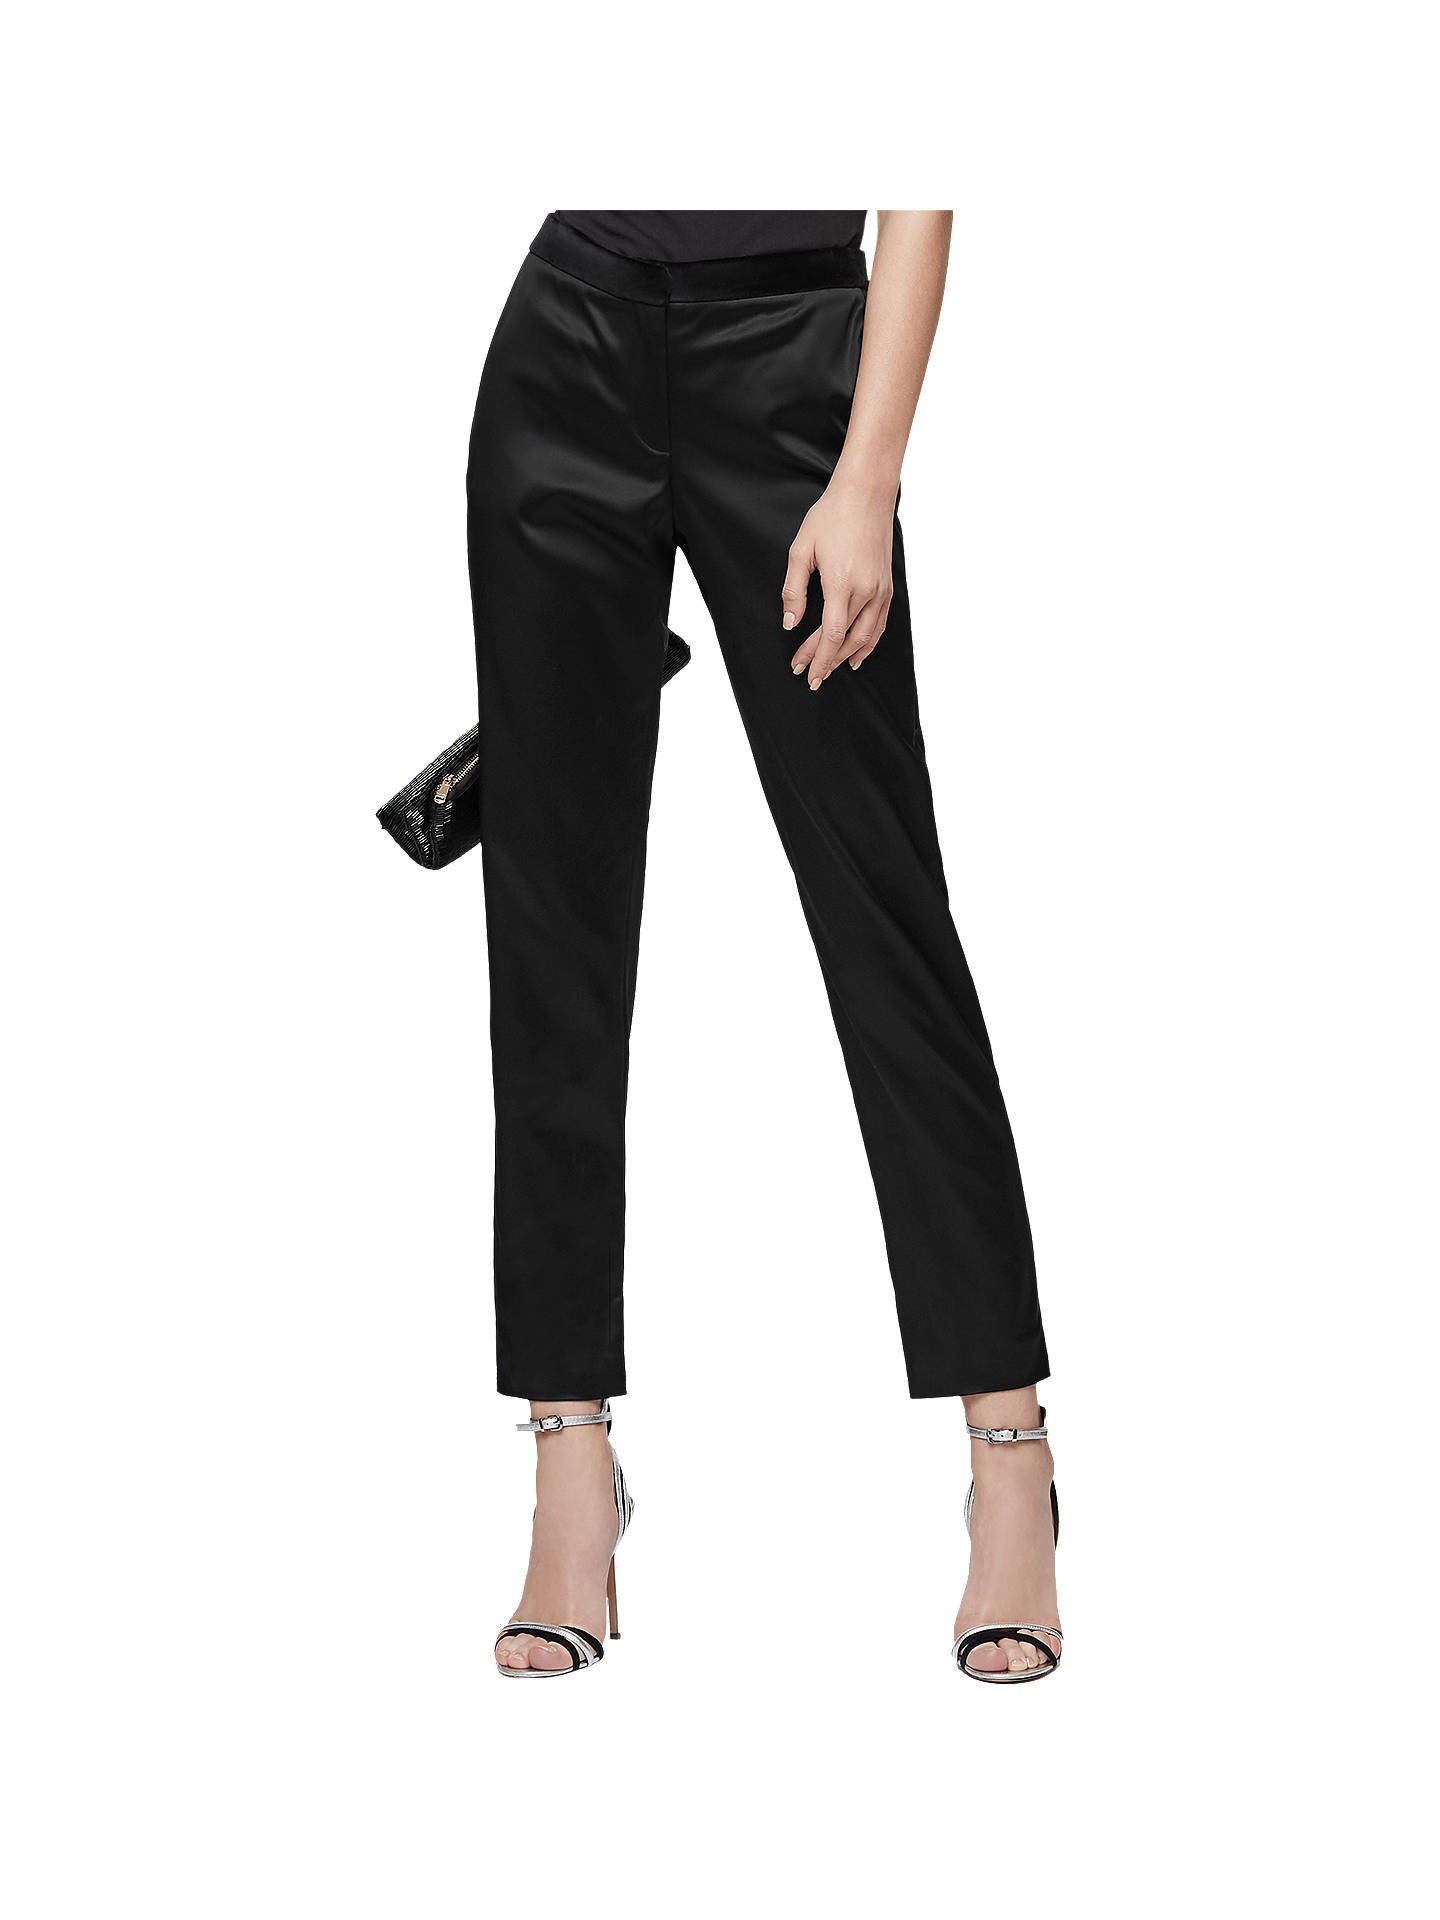 24b59b32a Buy Reiss Beth Satin Cigarette Trousers, Black, 6 Online at johnlewis.com  ...